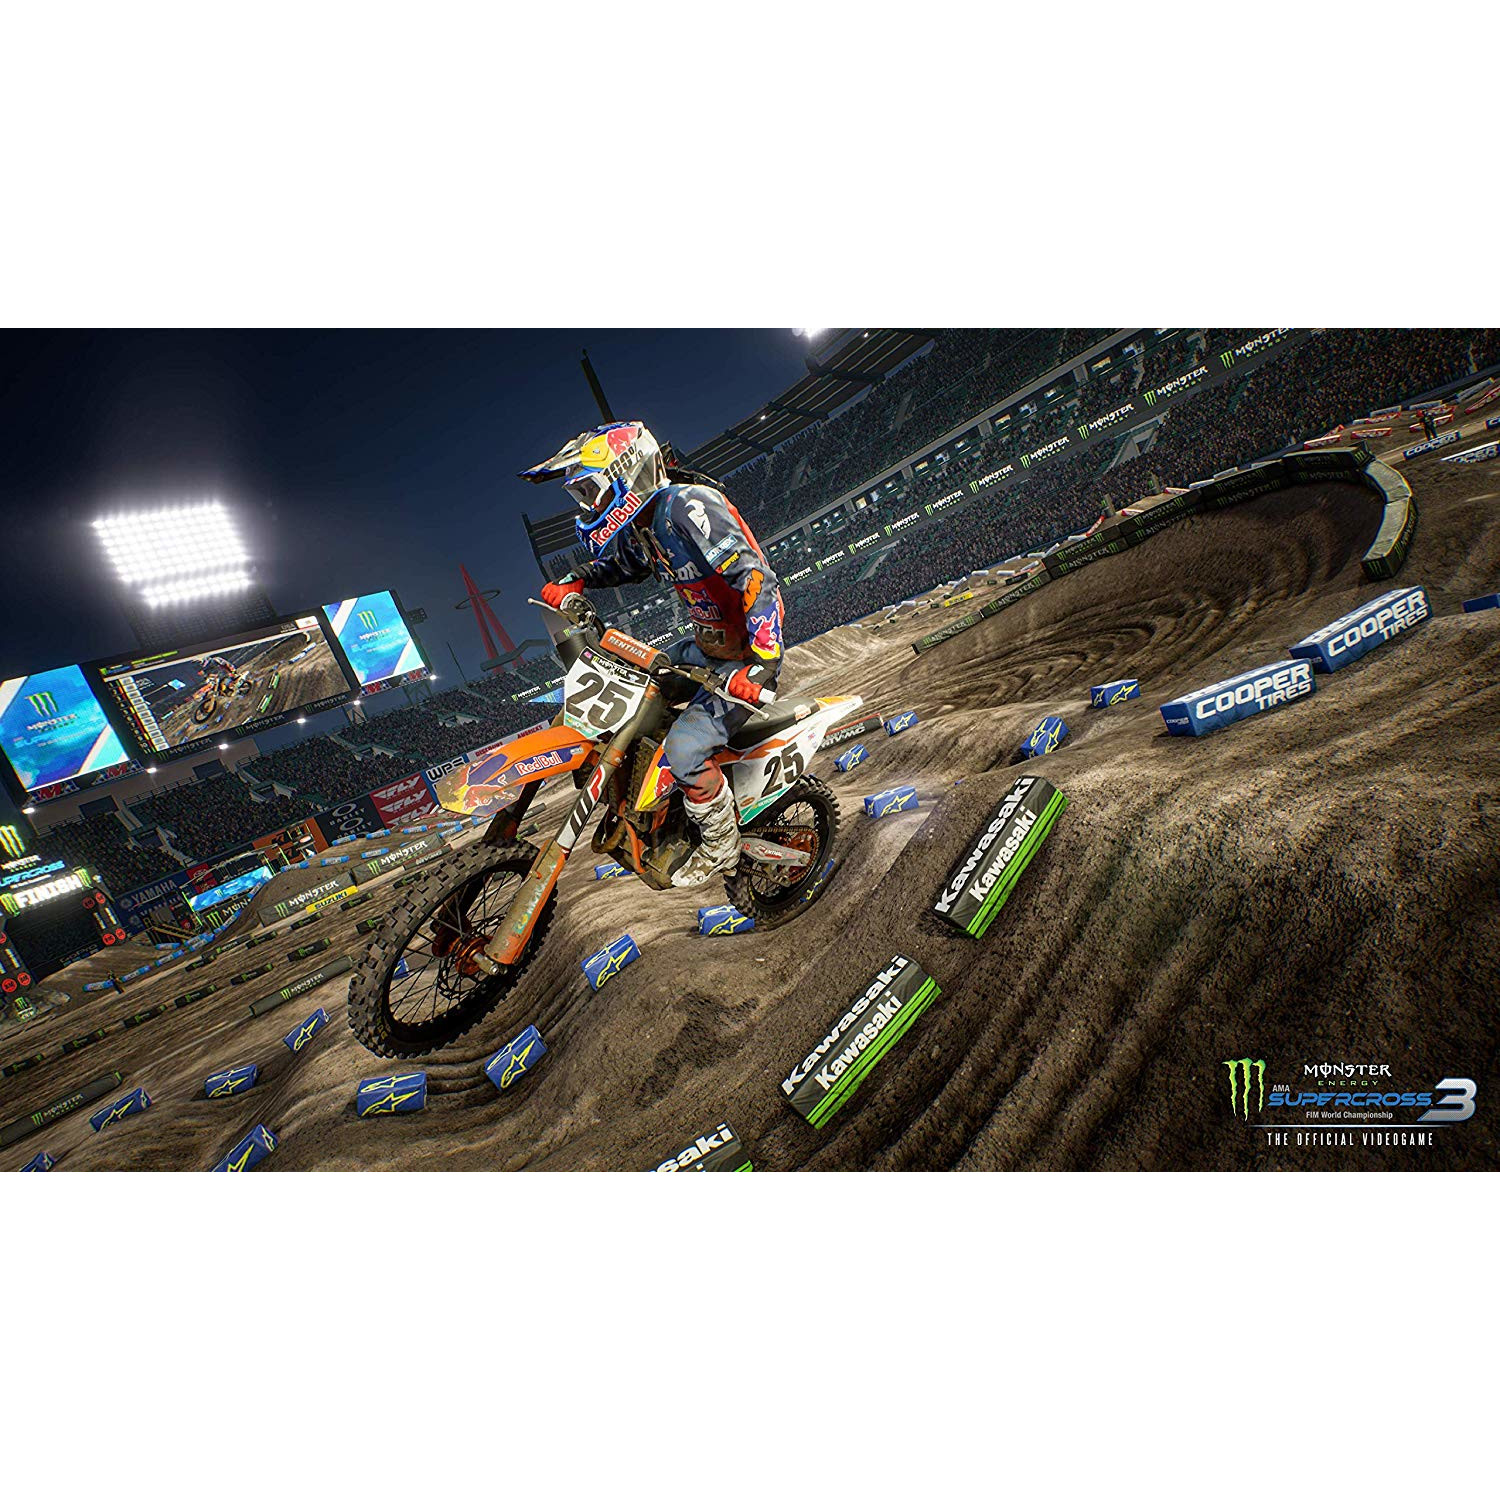 Joc Monster Energy Supercross 3 Pentru Nintendo Switch 7